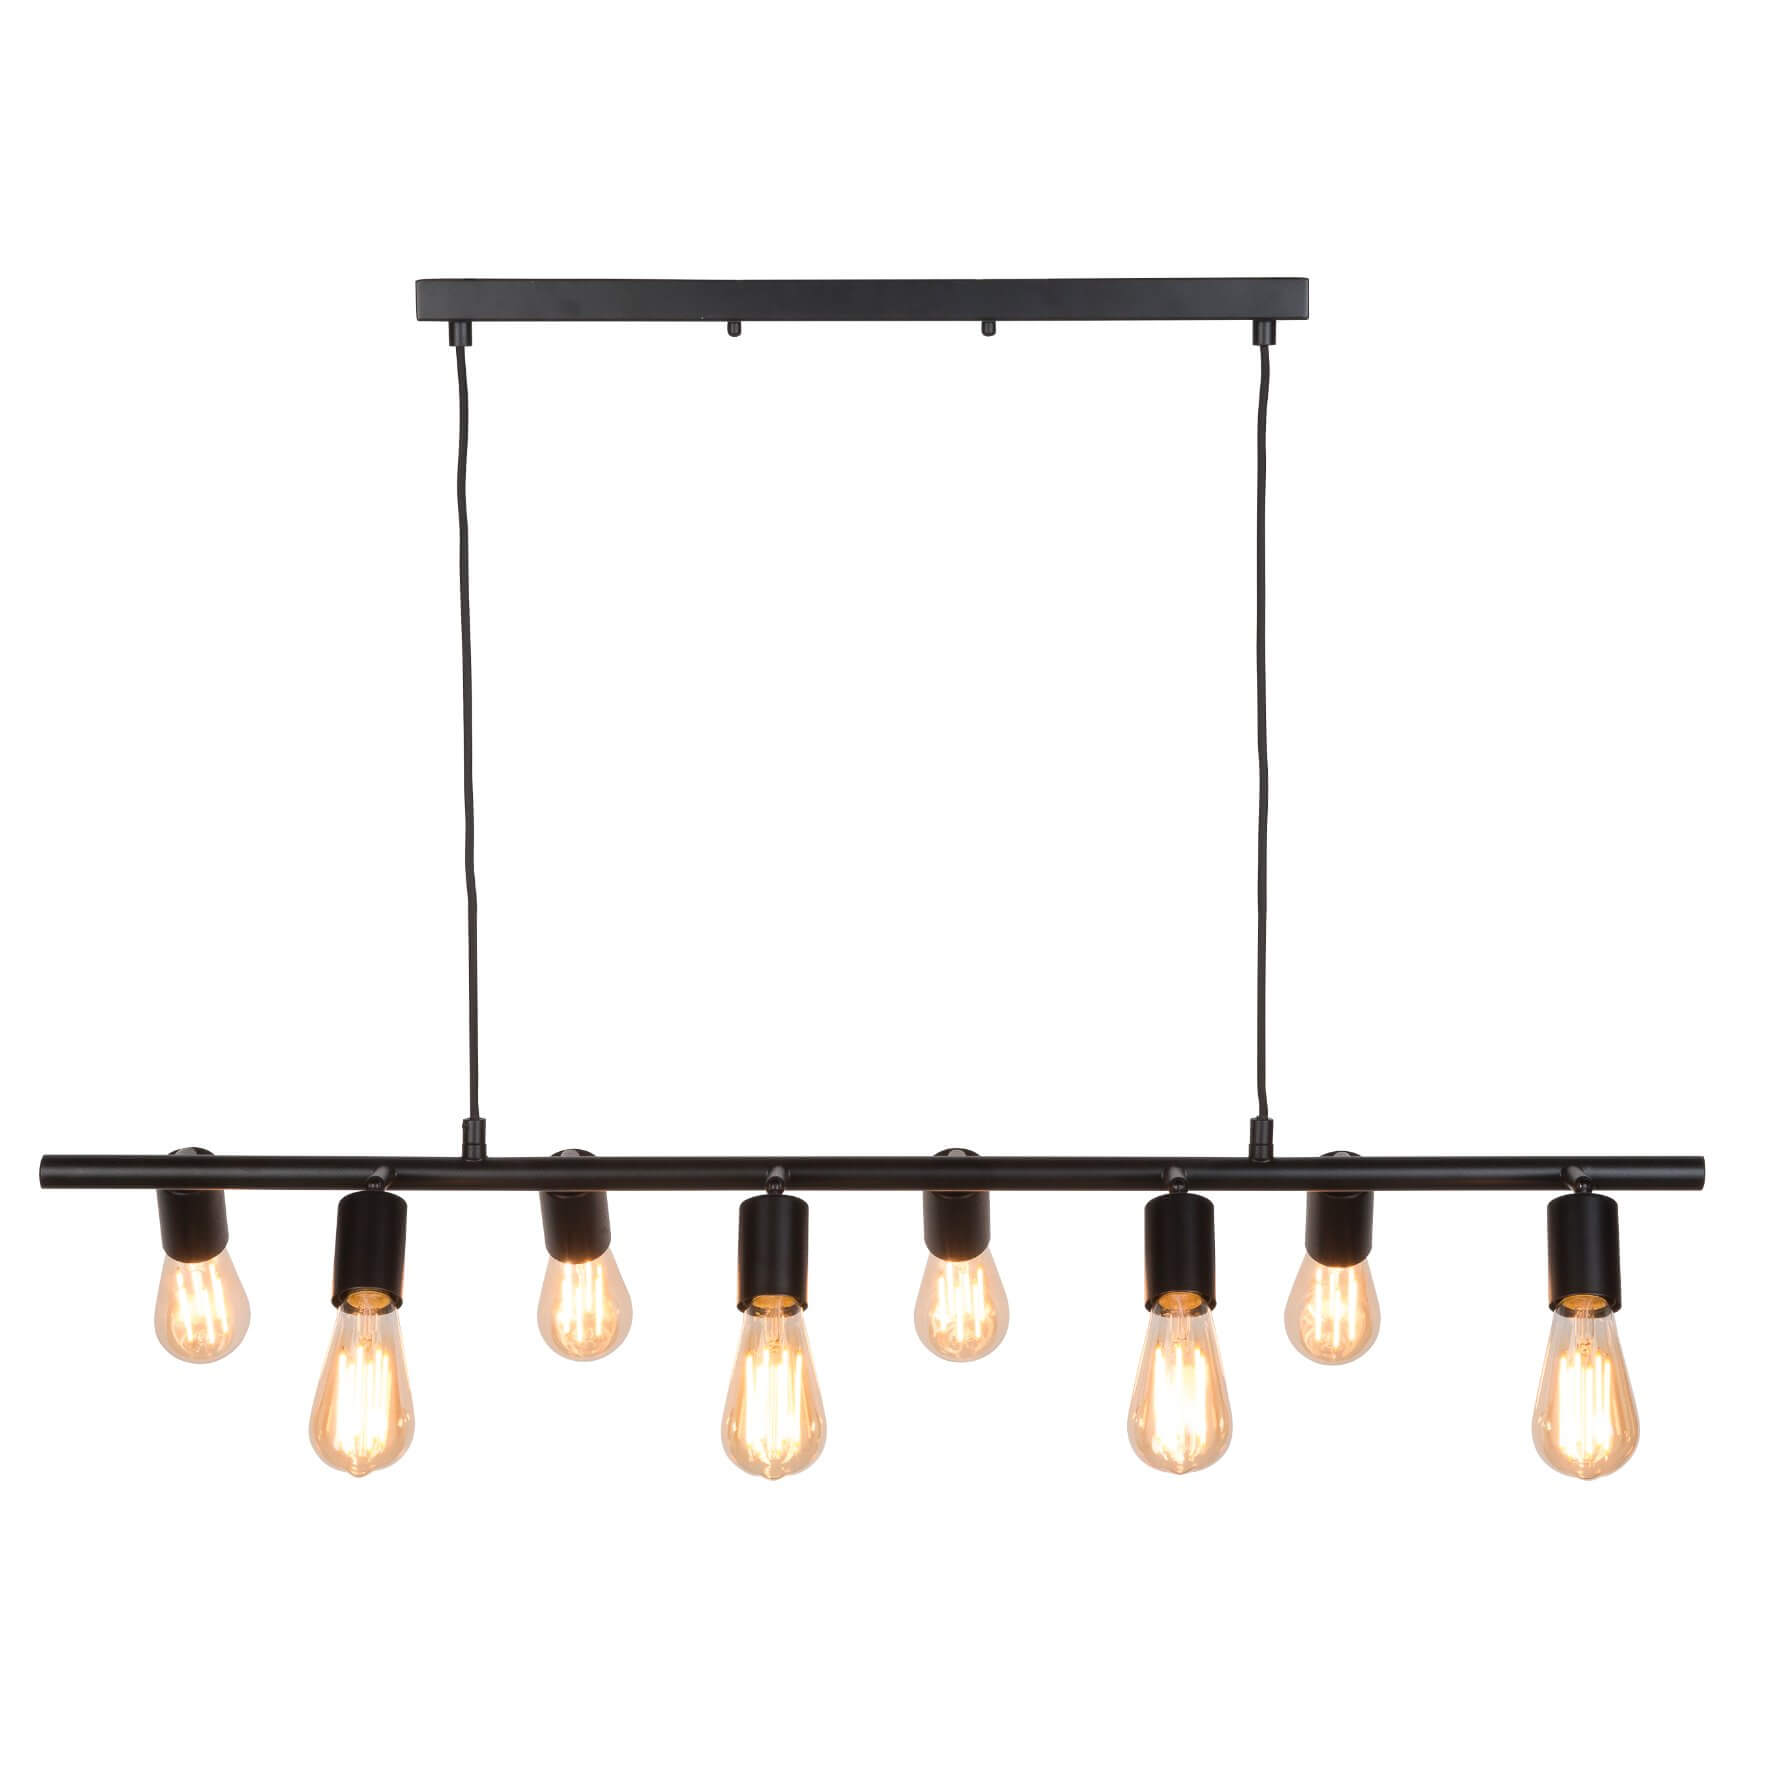 Suspension lustre Miami noir - It's About Romi